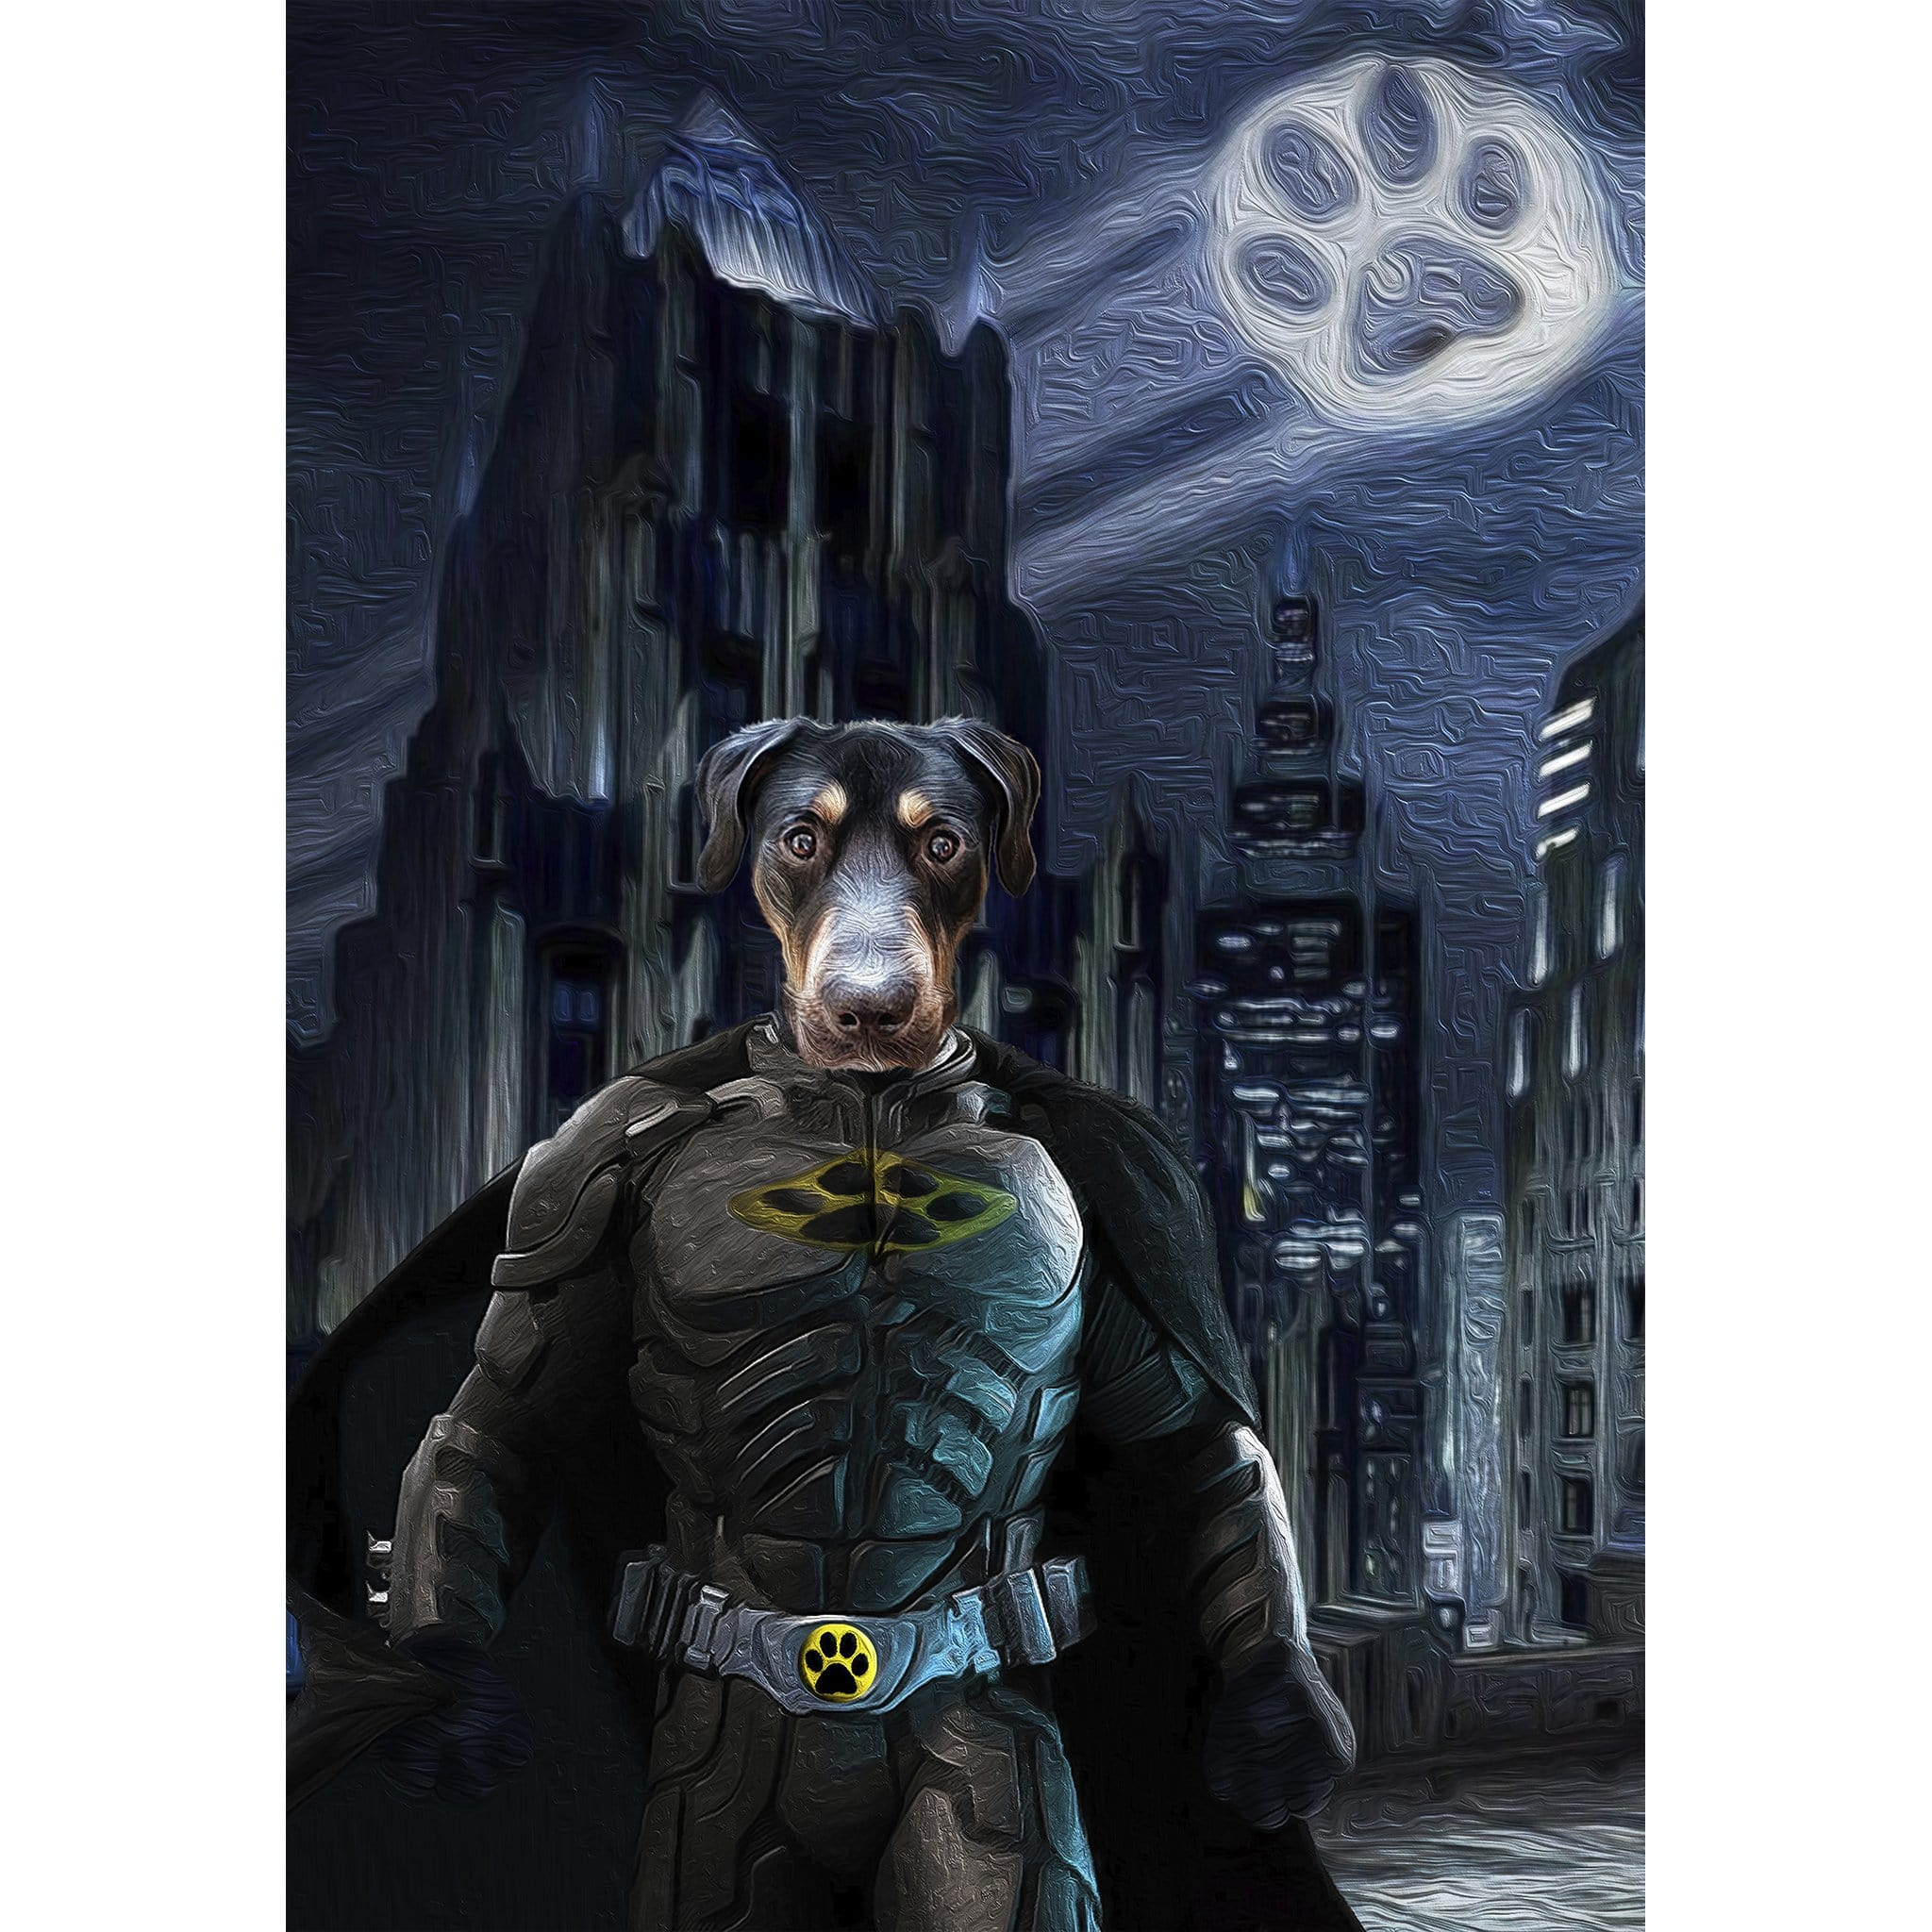 'The Batdog' Digital Portrait